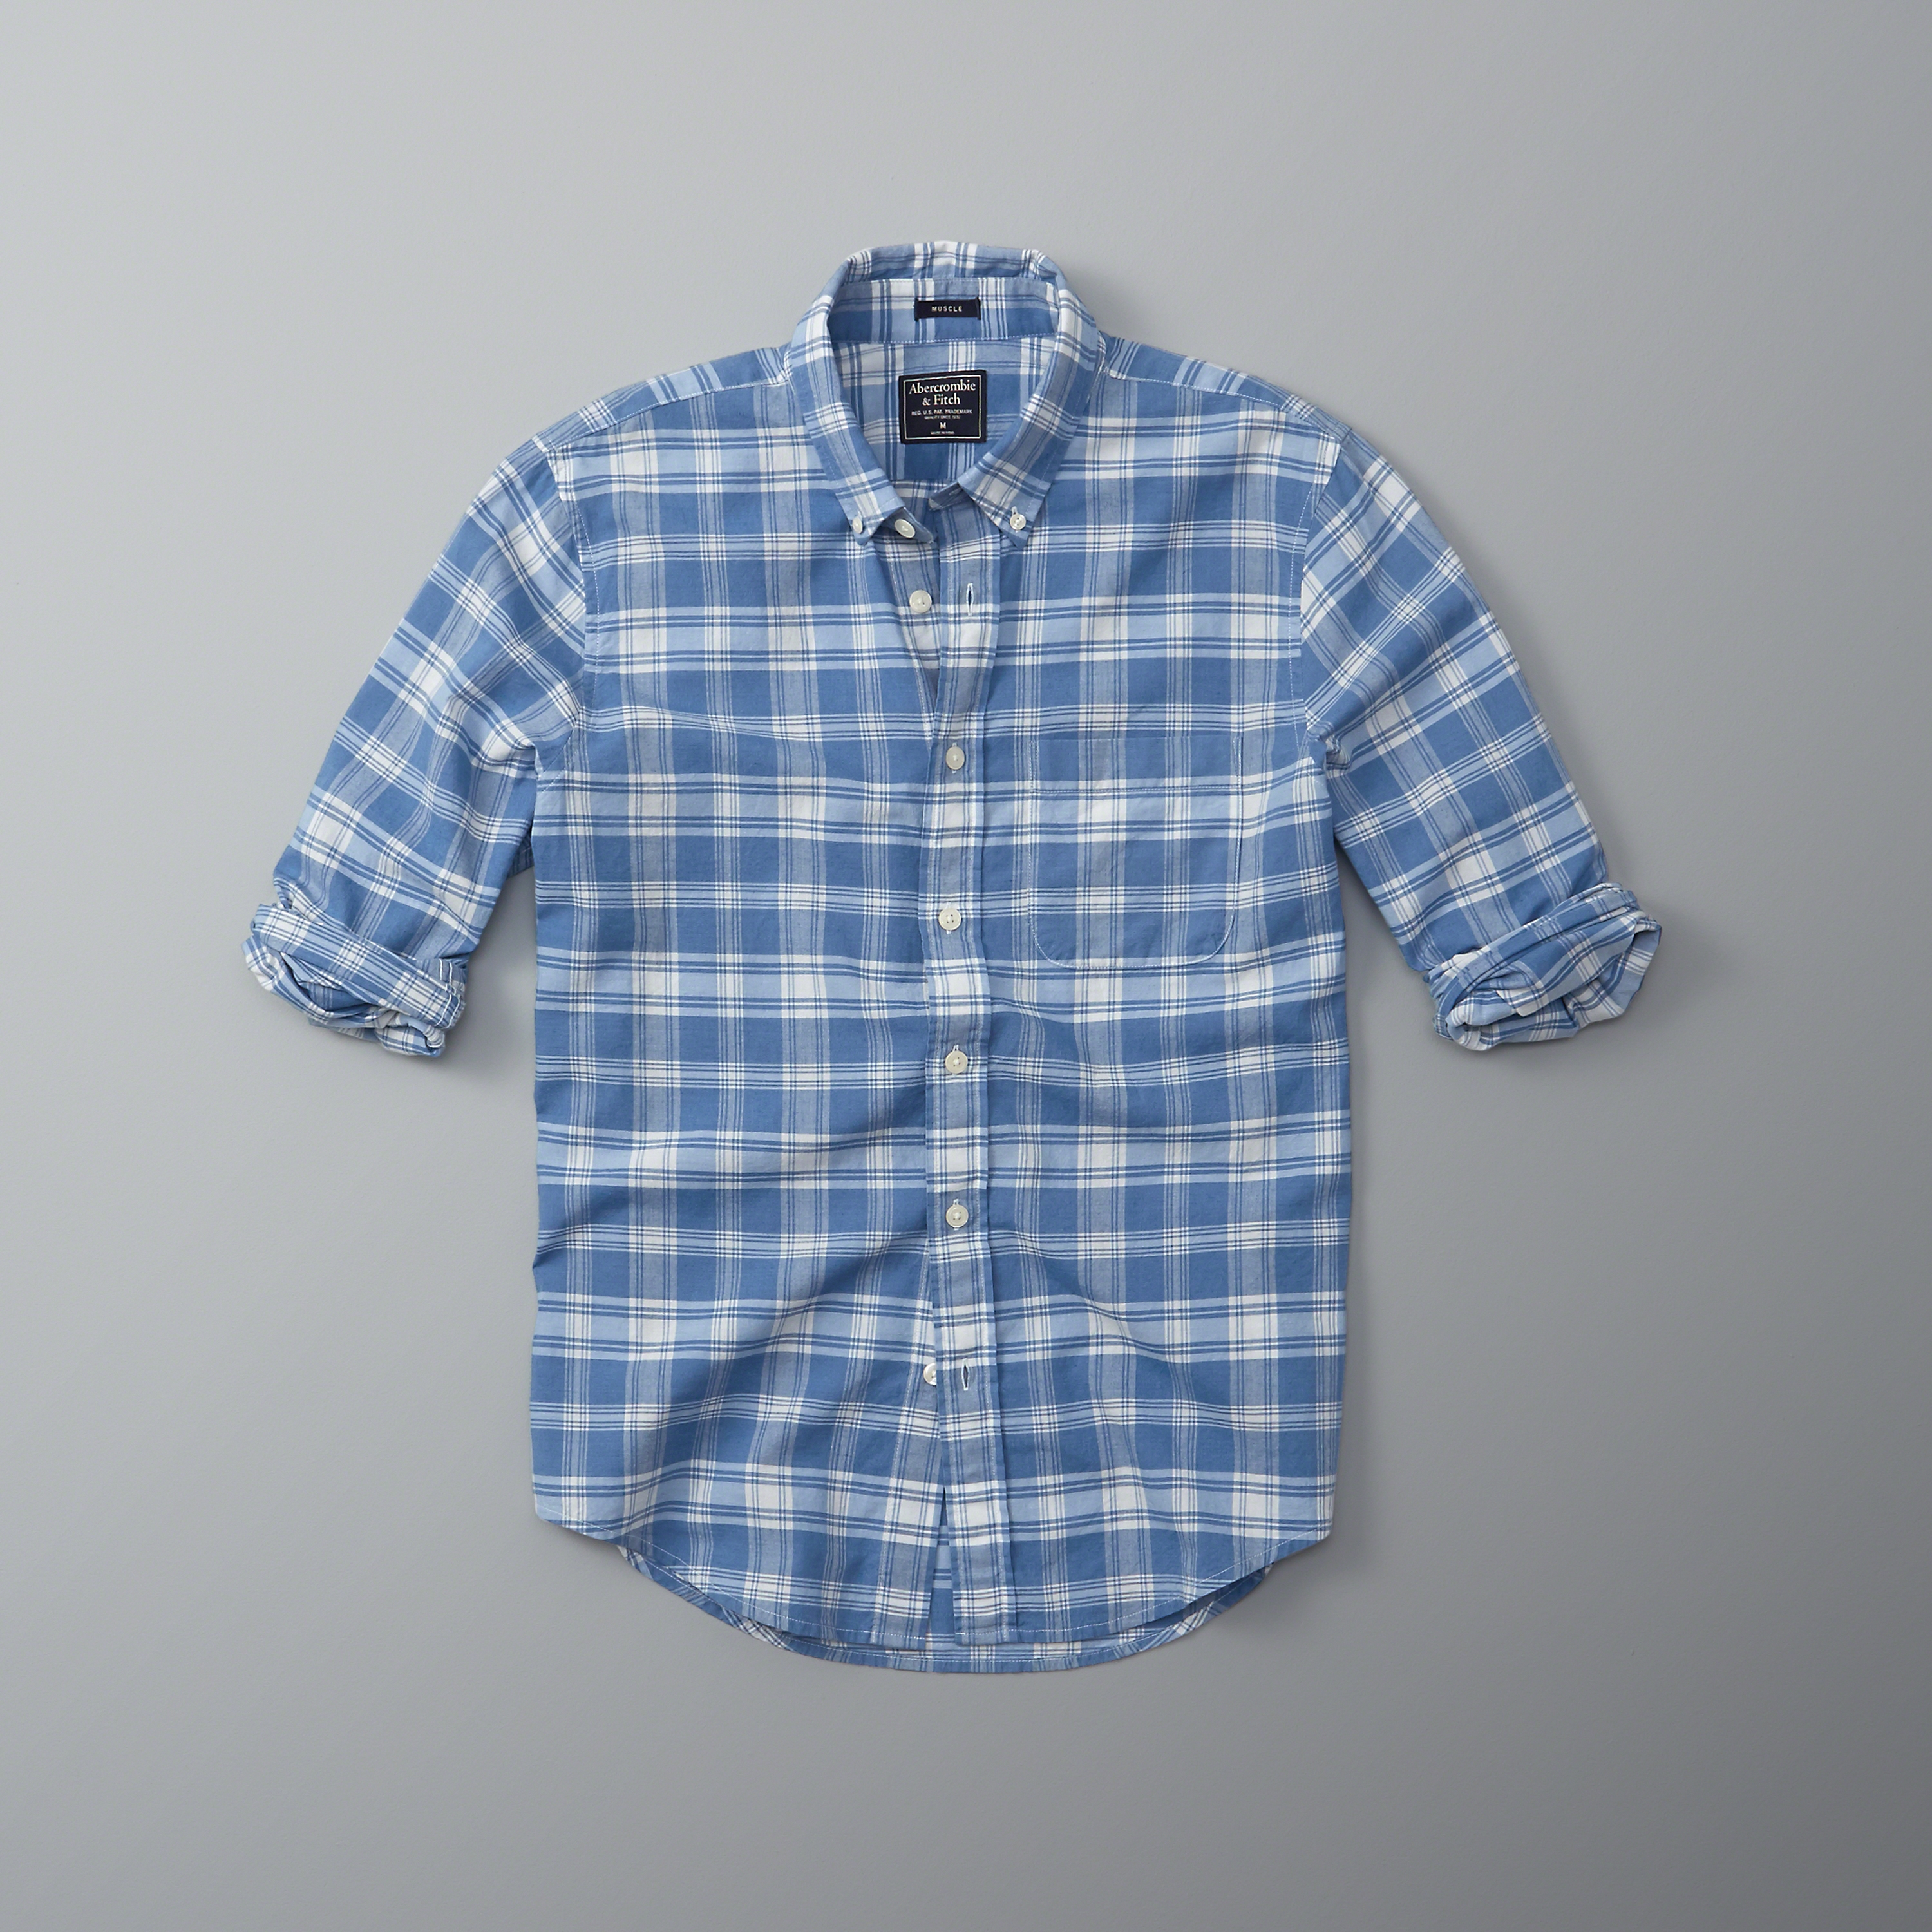 lyst abercrombie amp fitch plaid madras shirt in blue for men